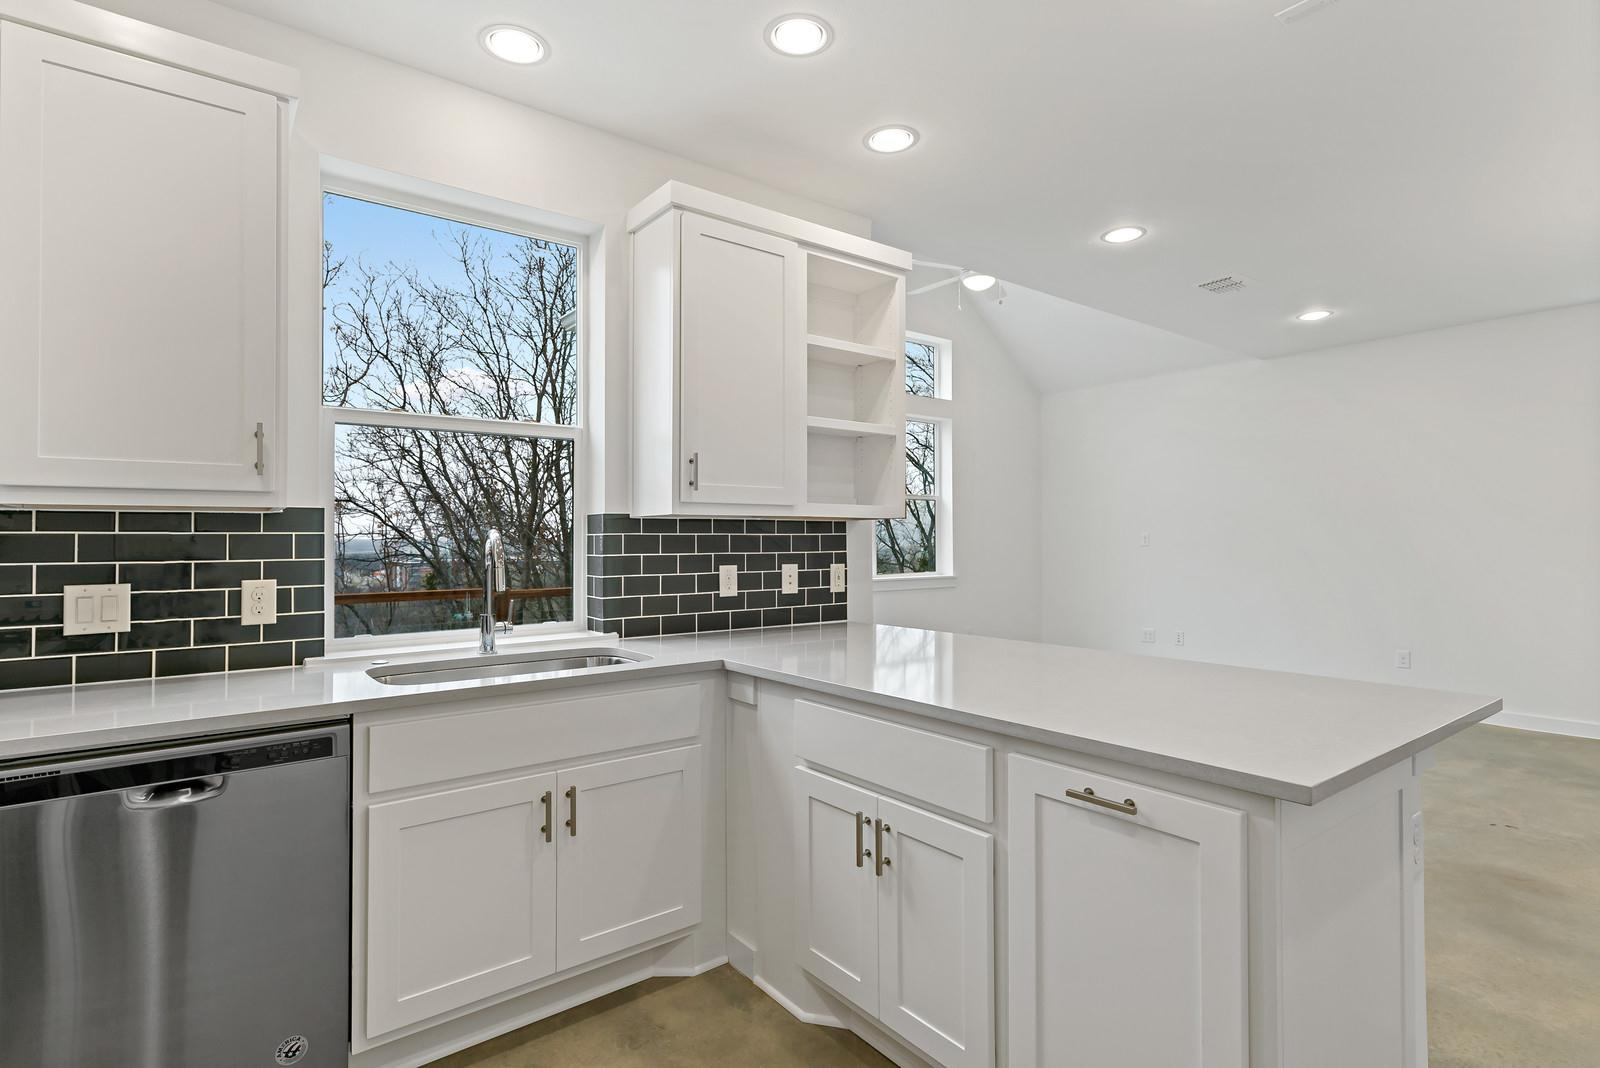 Kitchen featured in the Home D By StoryBuilt in Dallas, TX